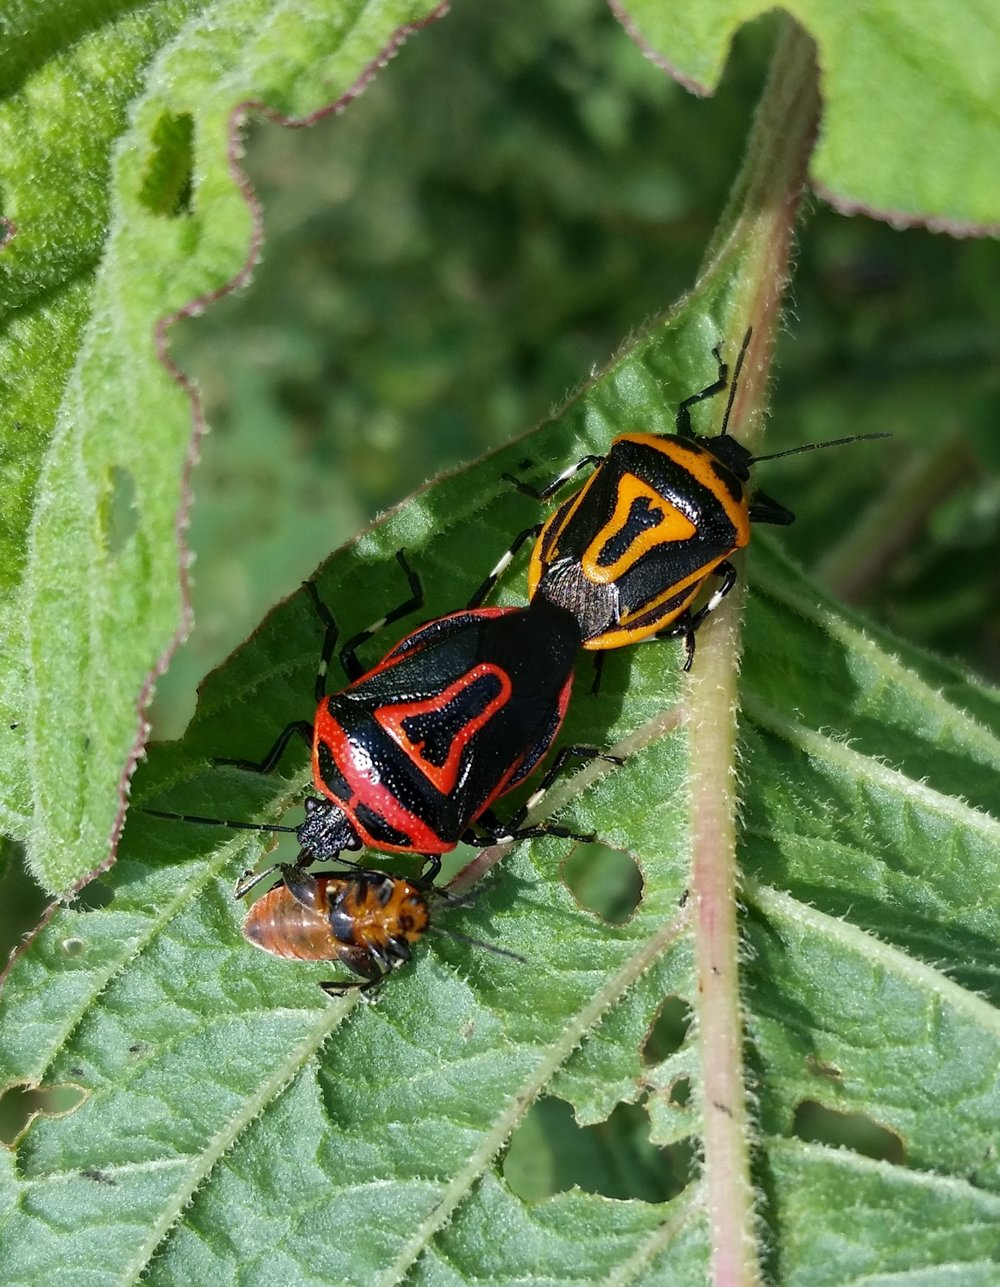 Two spotted stink bugs (Perillus bioculatus) making a mid-mating meal of a pigweed flea beetle (  Disonycha glabrata   ).